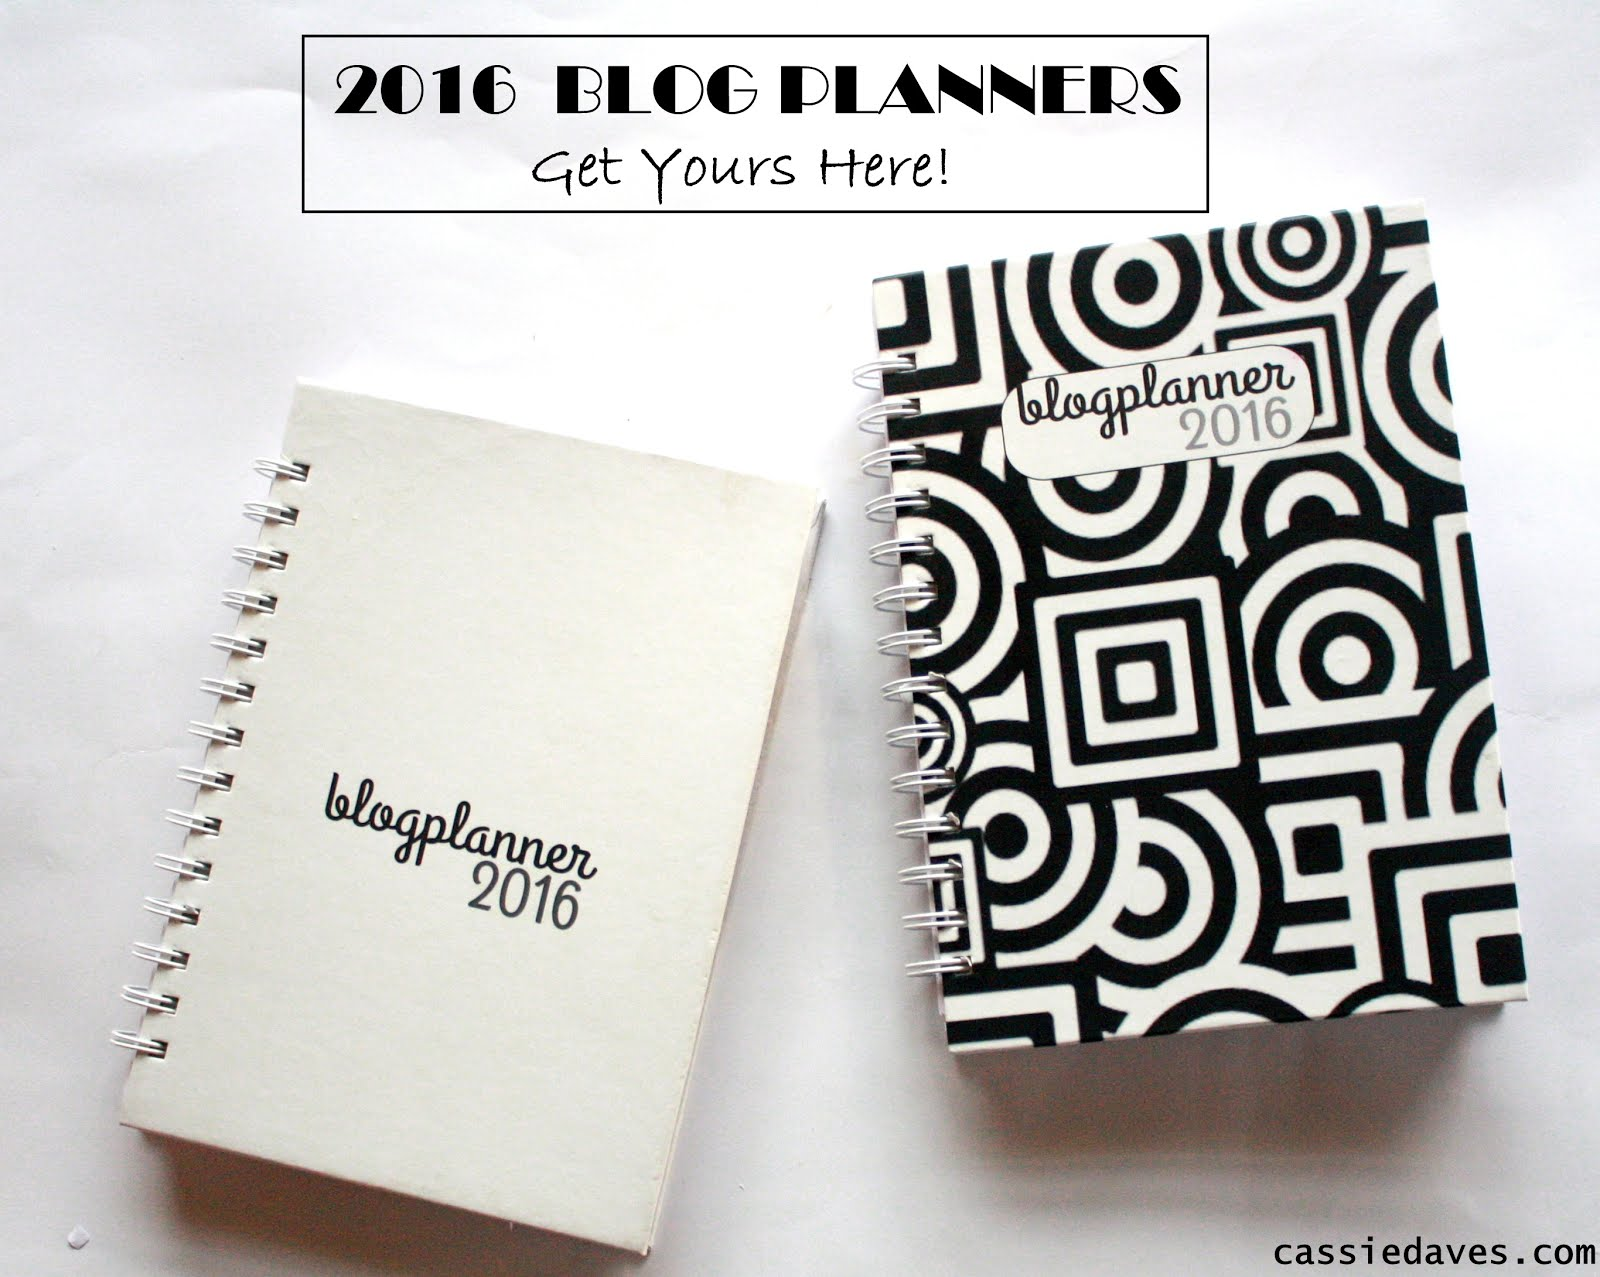 Cassie Daves Blog planner